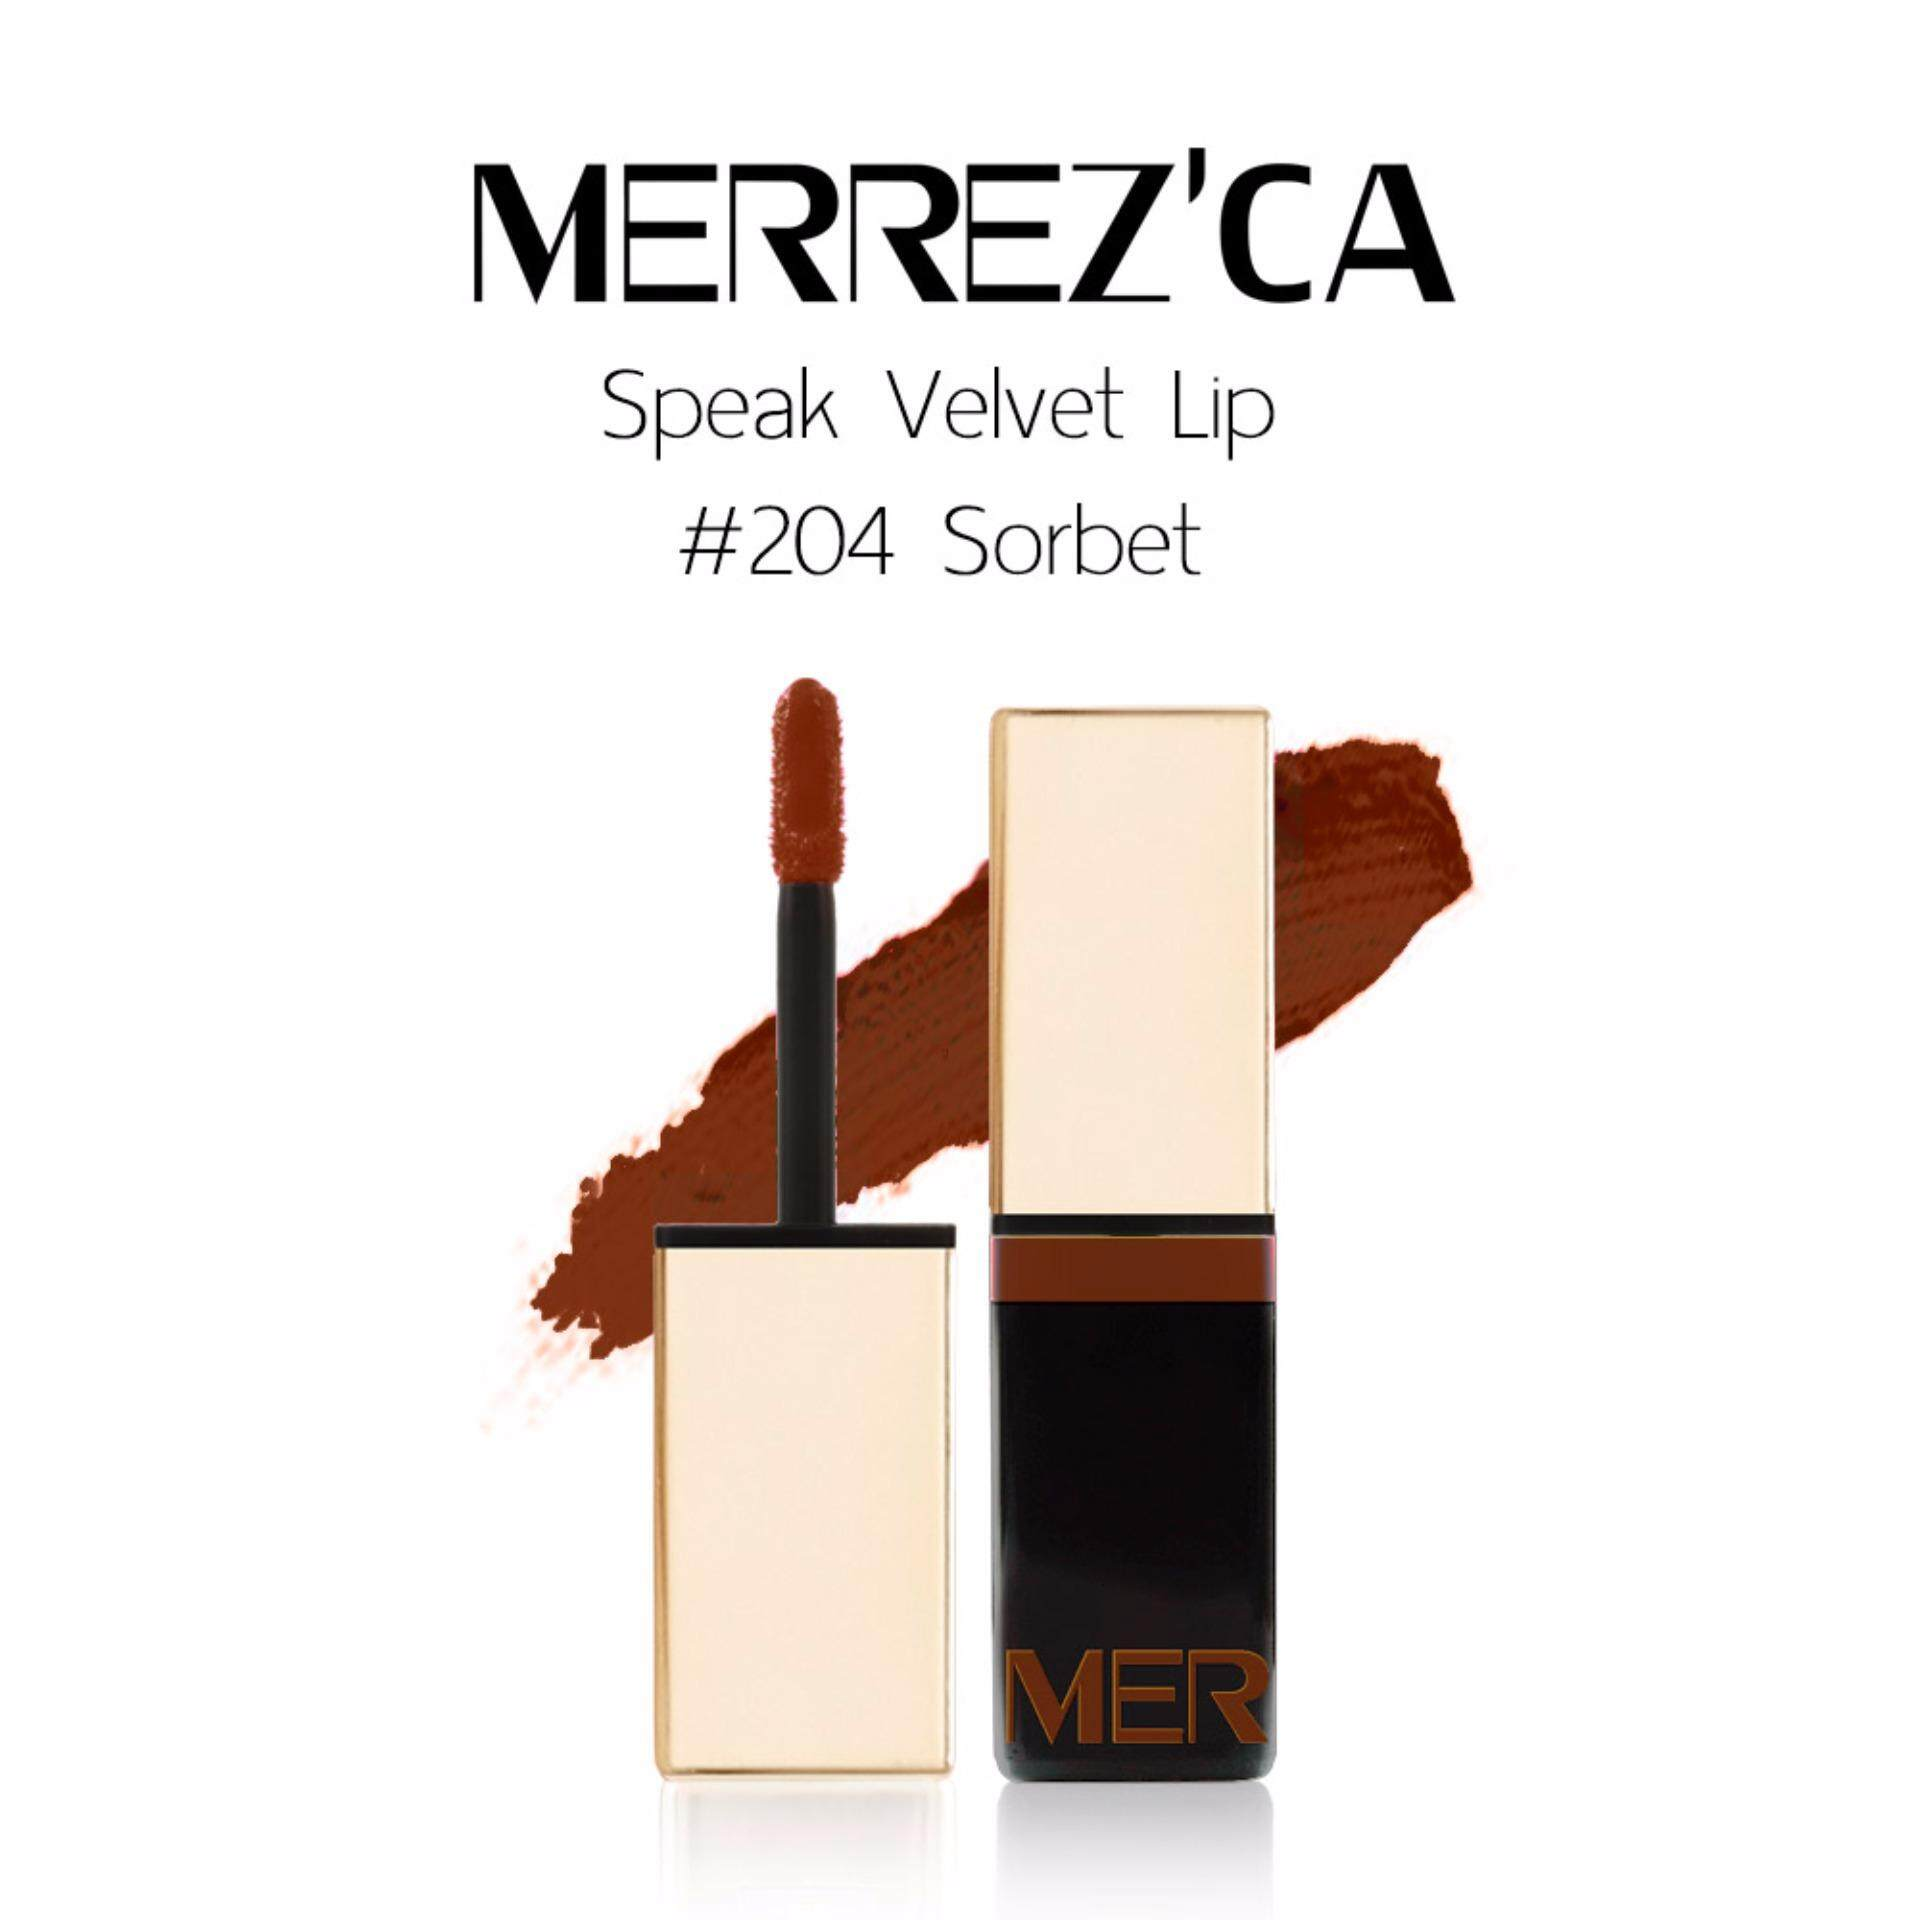 Merrez'Ca Speak Velvet Lip #204 Sorbet